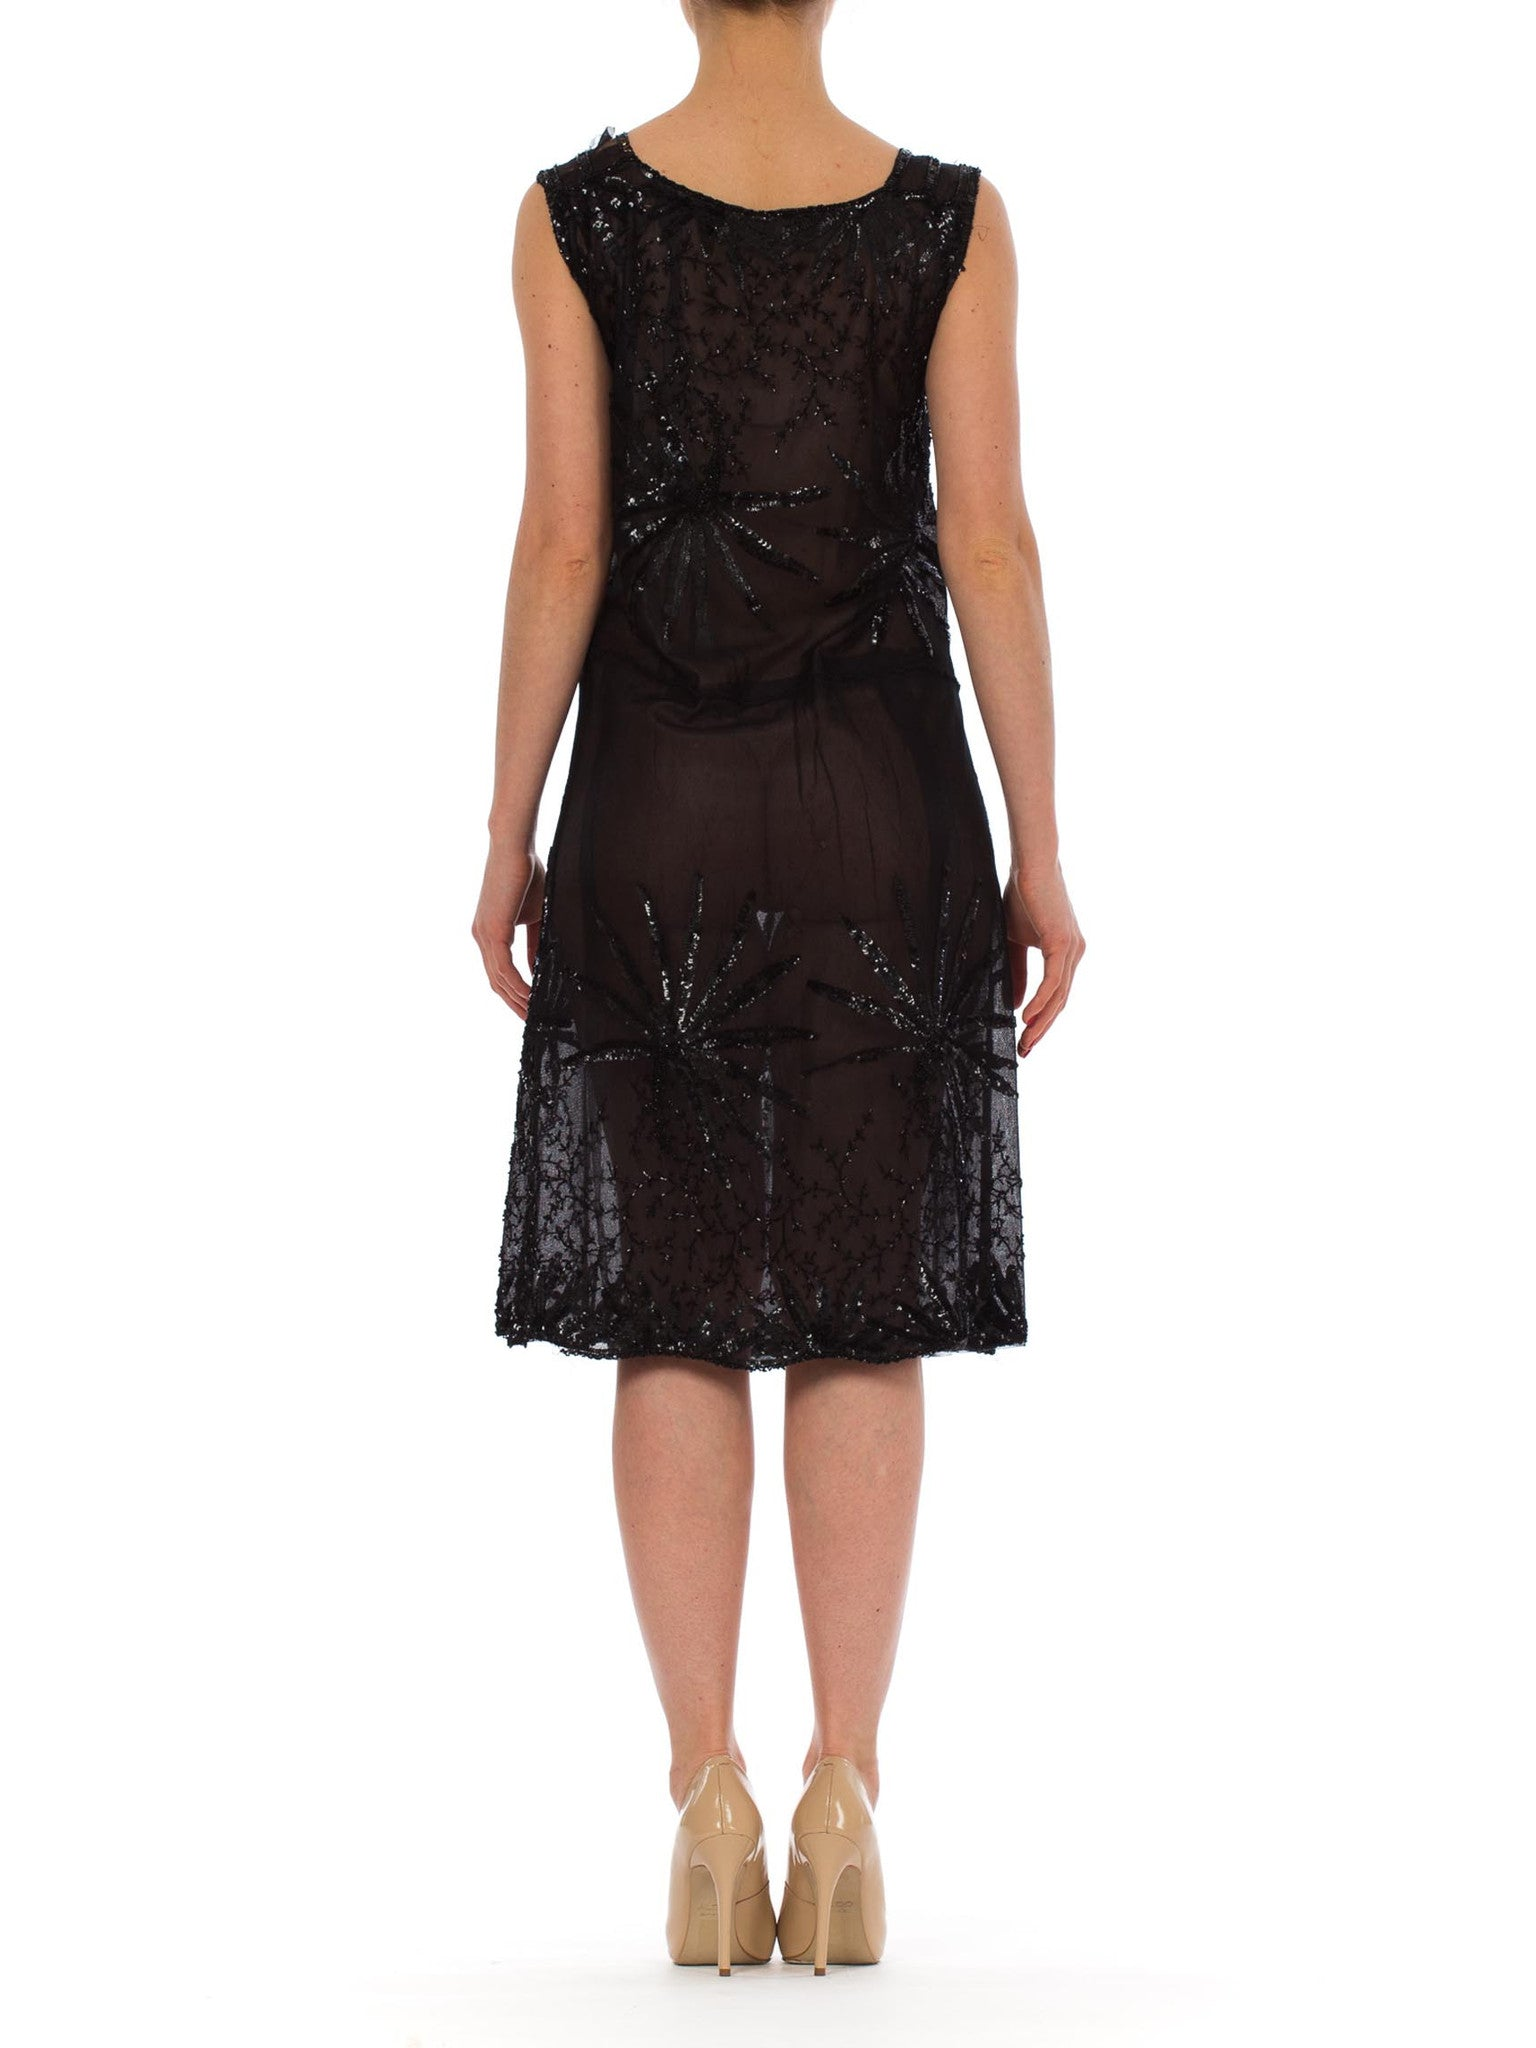 1920S Black Beaded Net Sheer Flapper Cocktail Dress With Large Sequined Flowers